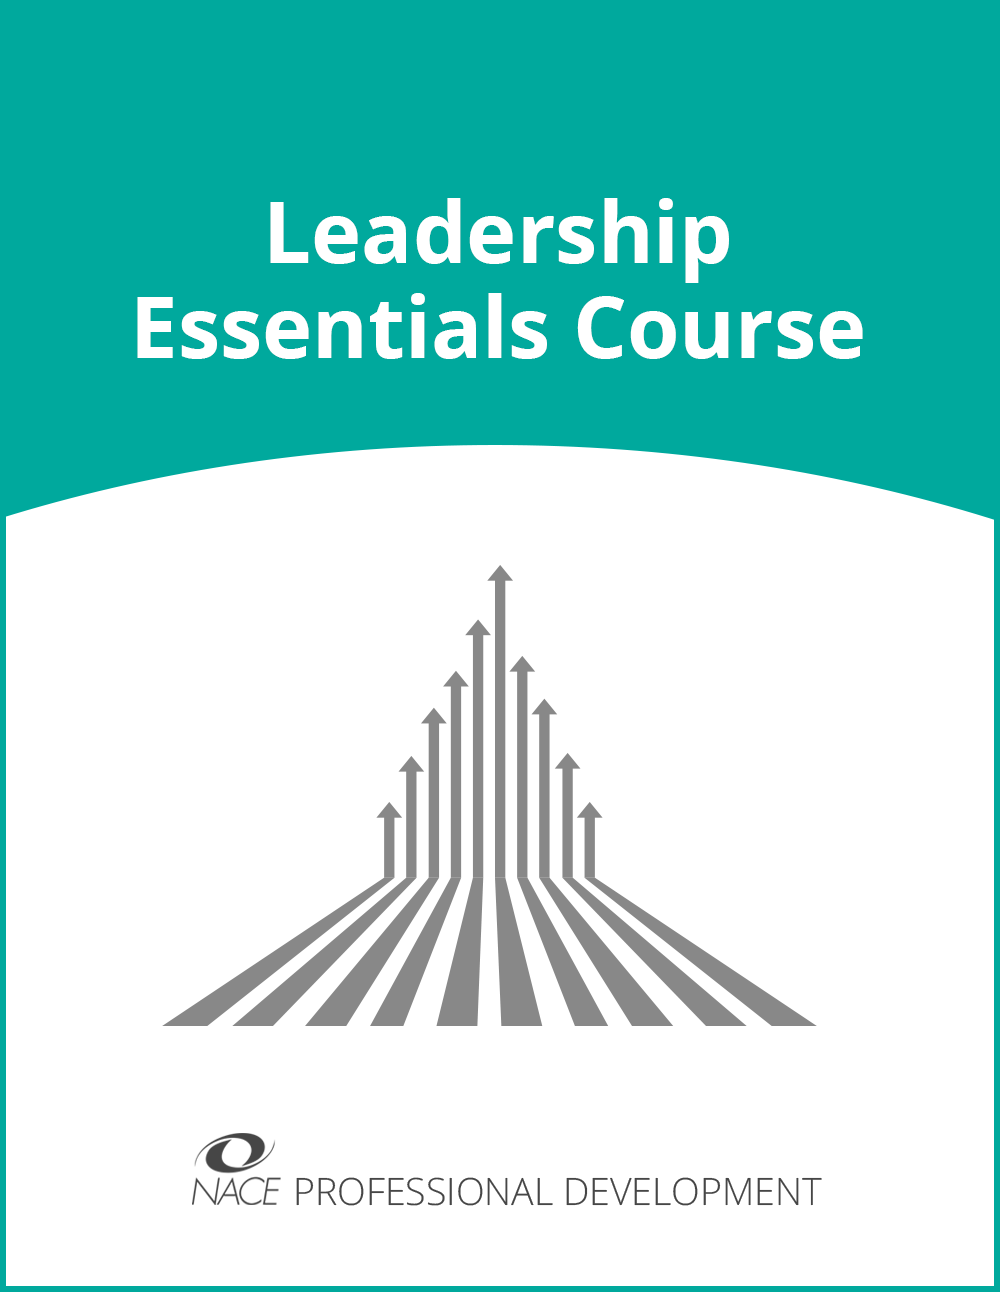 Leadership Essentials Course